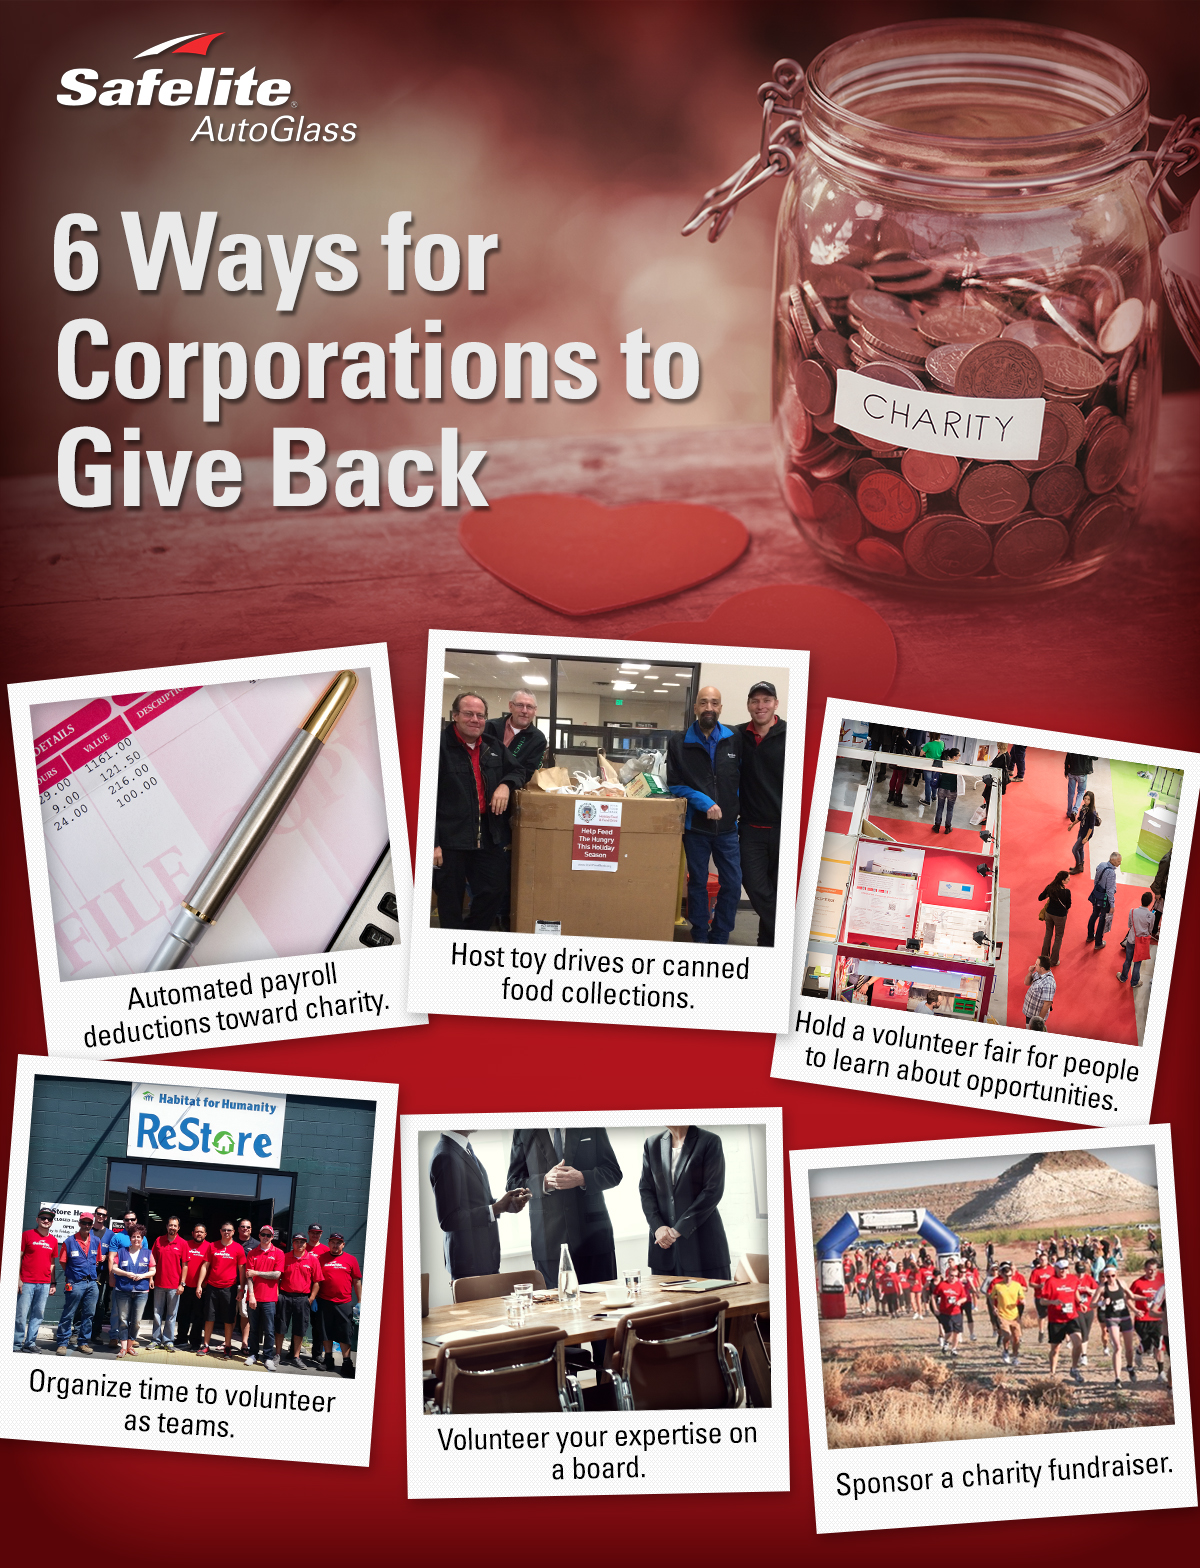 Safelite AutoGlass shares an infographic and tips about six ways corporations can give back.